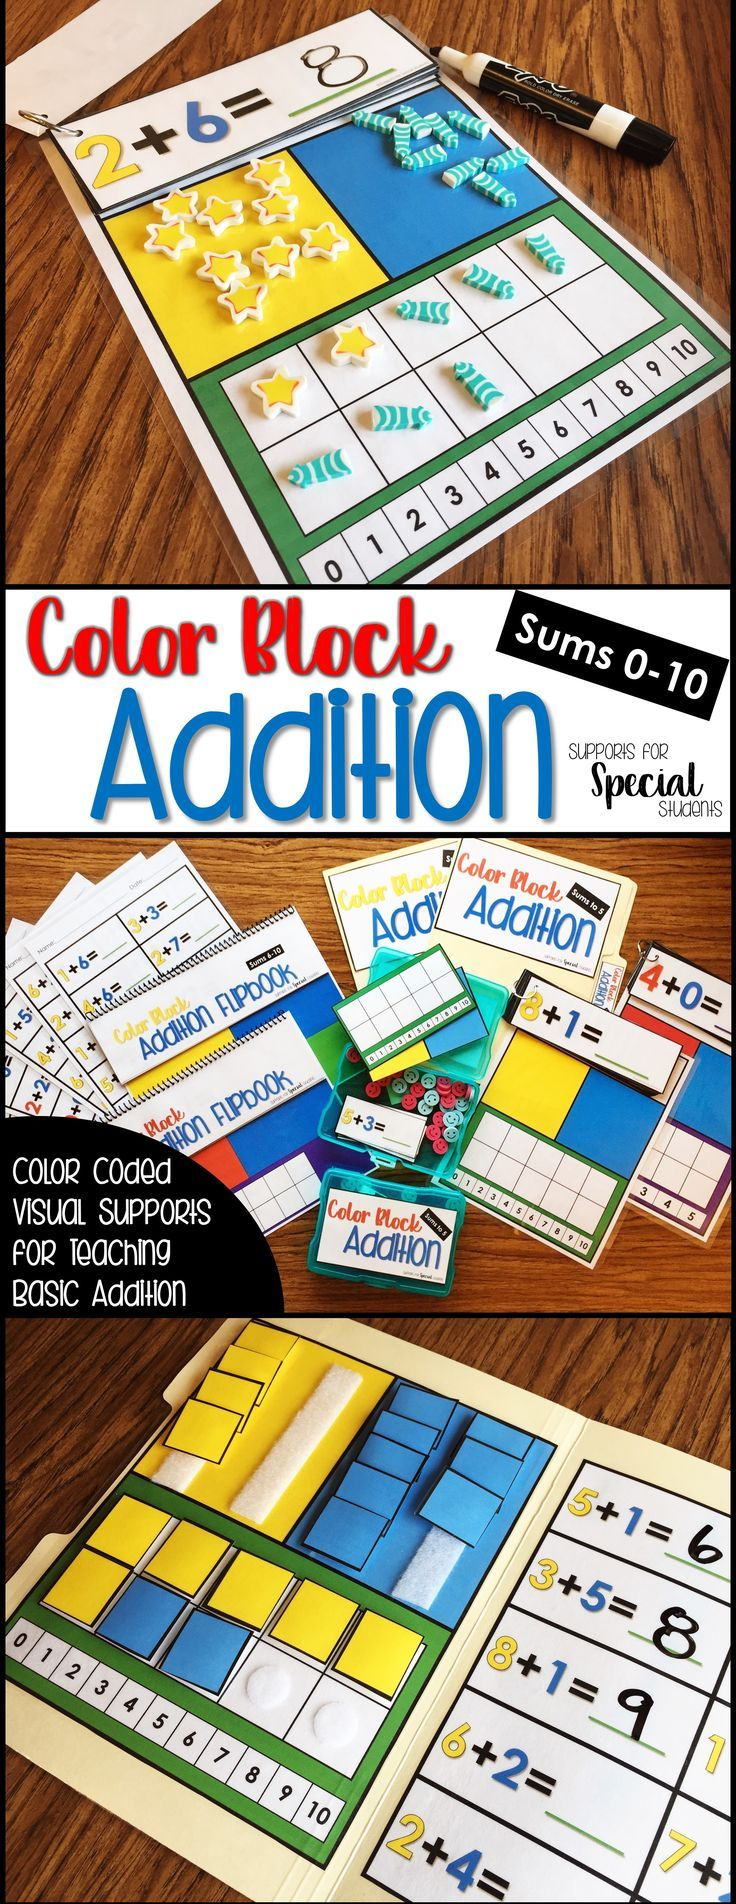 This resource is filled with color-coded supports for basic addition. There are 2 full sets within this pack; one set of materials for sums up to 5 and another set for sums from 6-10. All of the materials can be used with any set of classroom manipulatives. The perfect way to teach addition for special education, kindergarten or first grade.  By Supports for Special Students